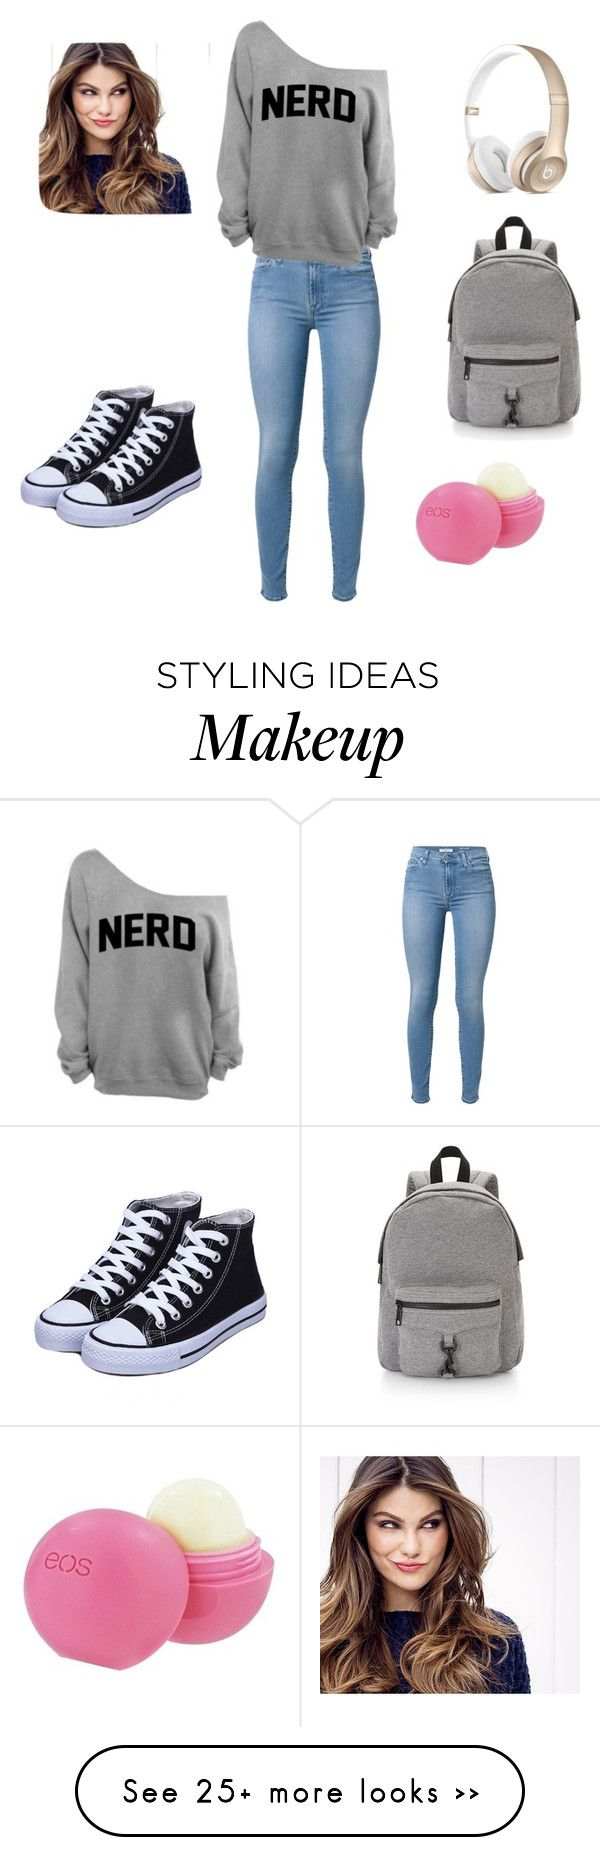 """""""Sans titre #1"""" by sadije on Polyvore featuring mode, 7 For All Mankind, Rebecca Minkoff, Eos en ULTA"""